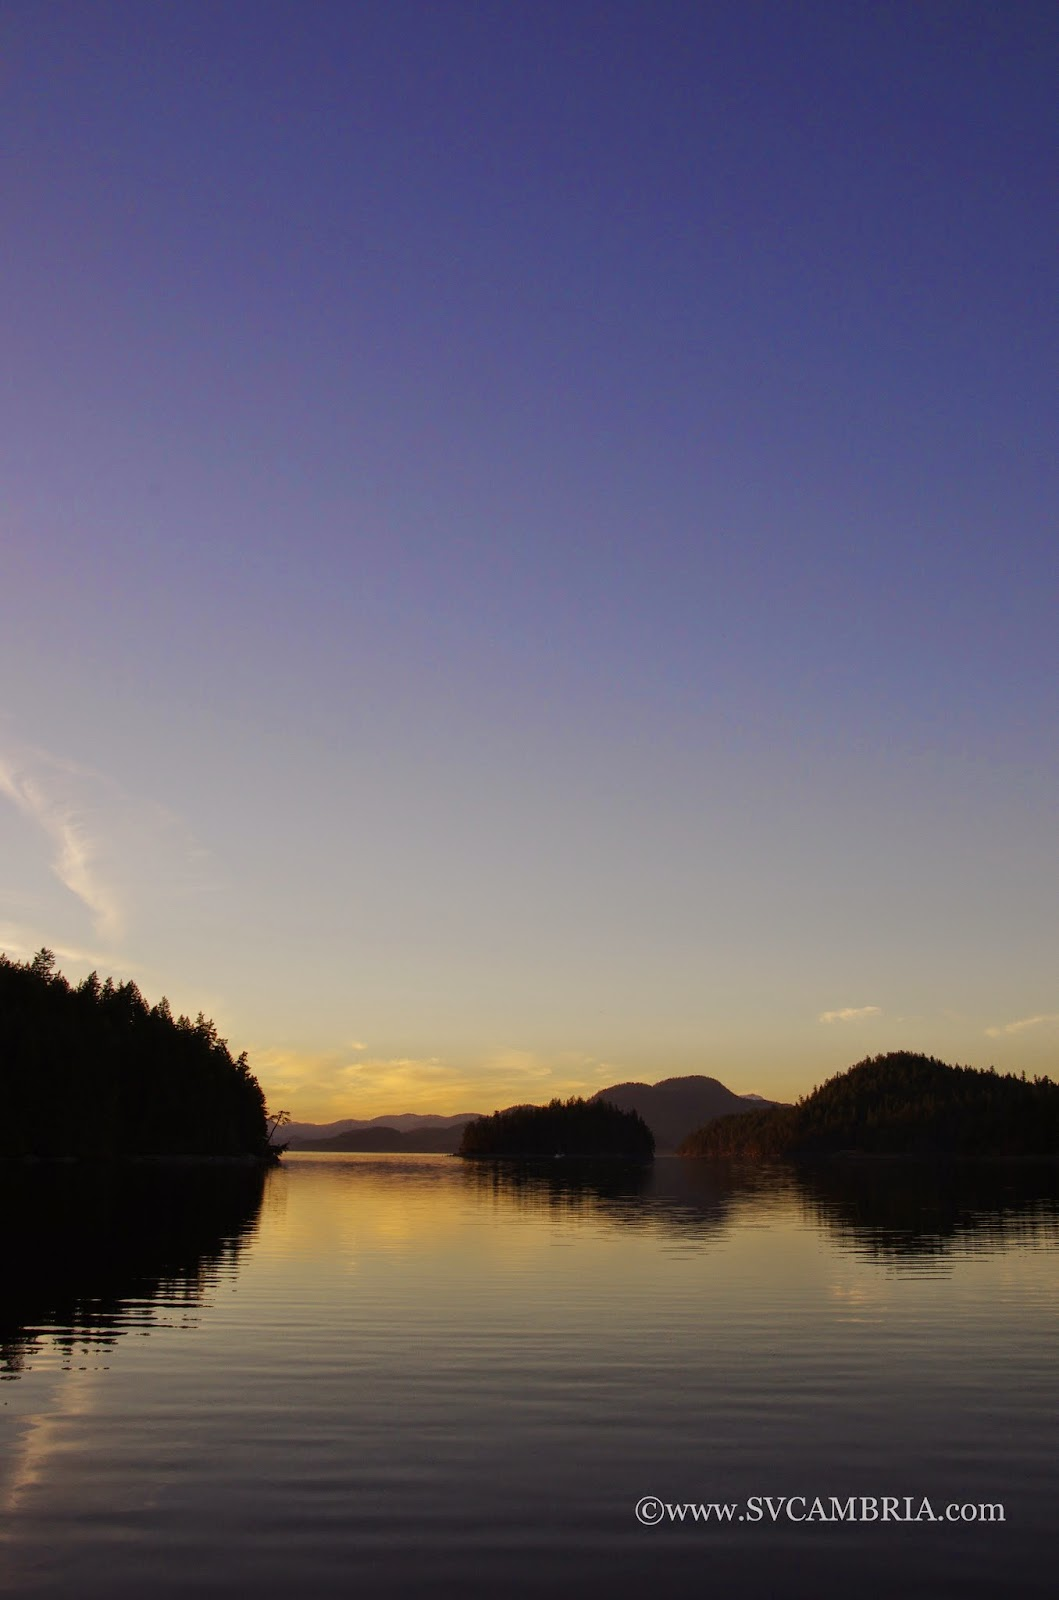 Sunset in Carrington Bay, Cortes Island.